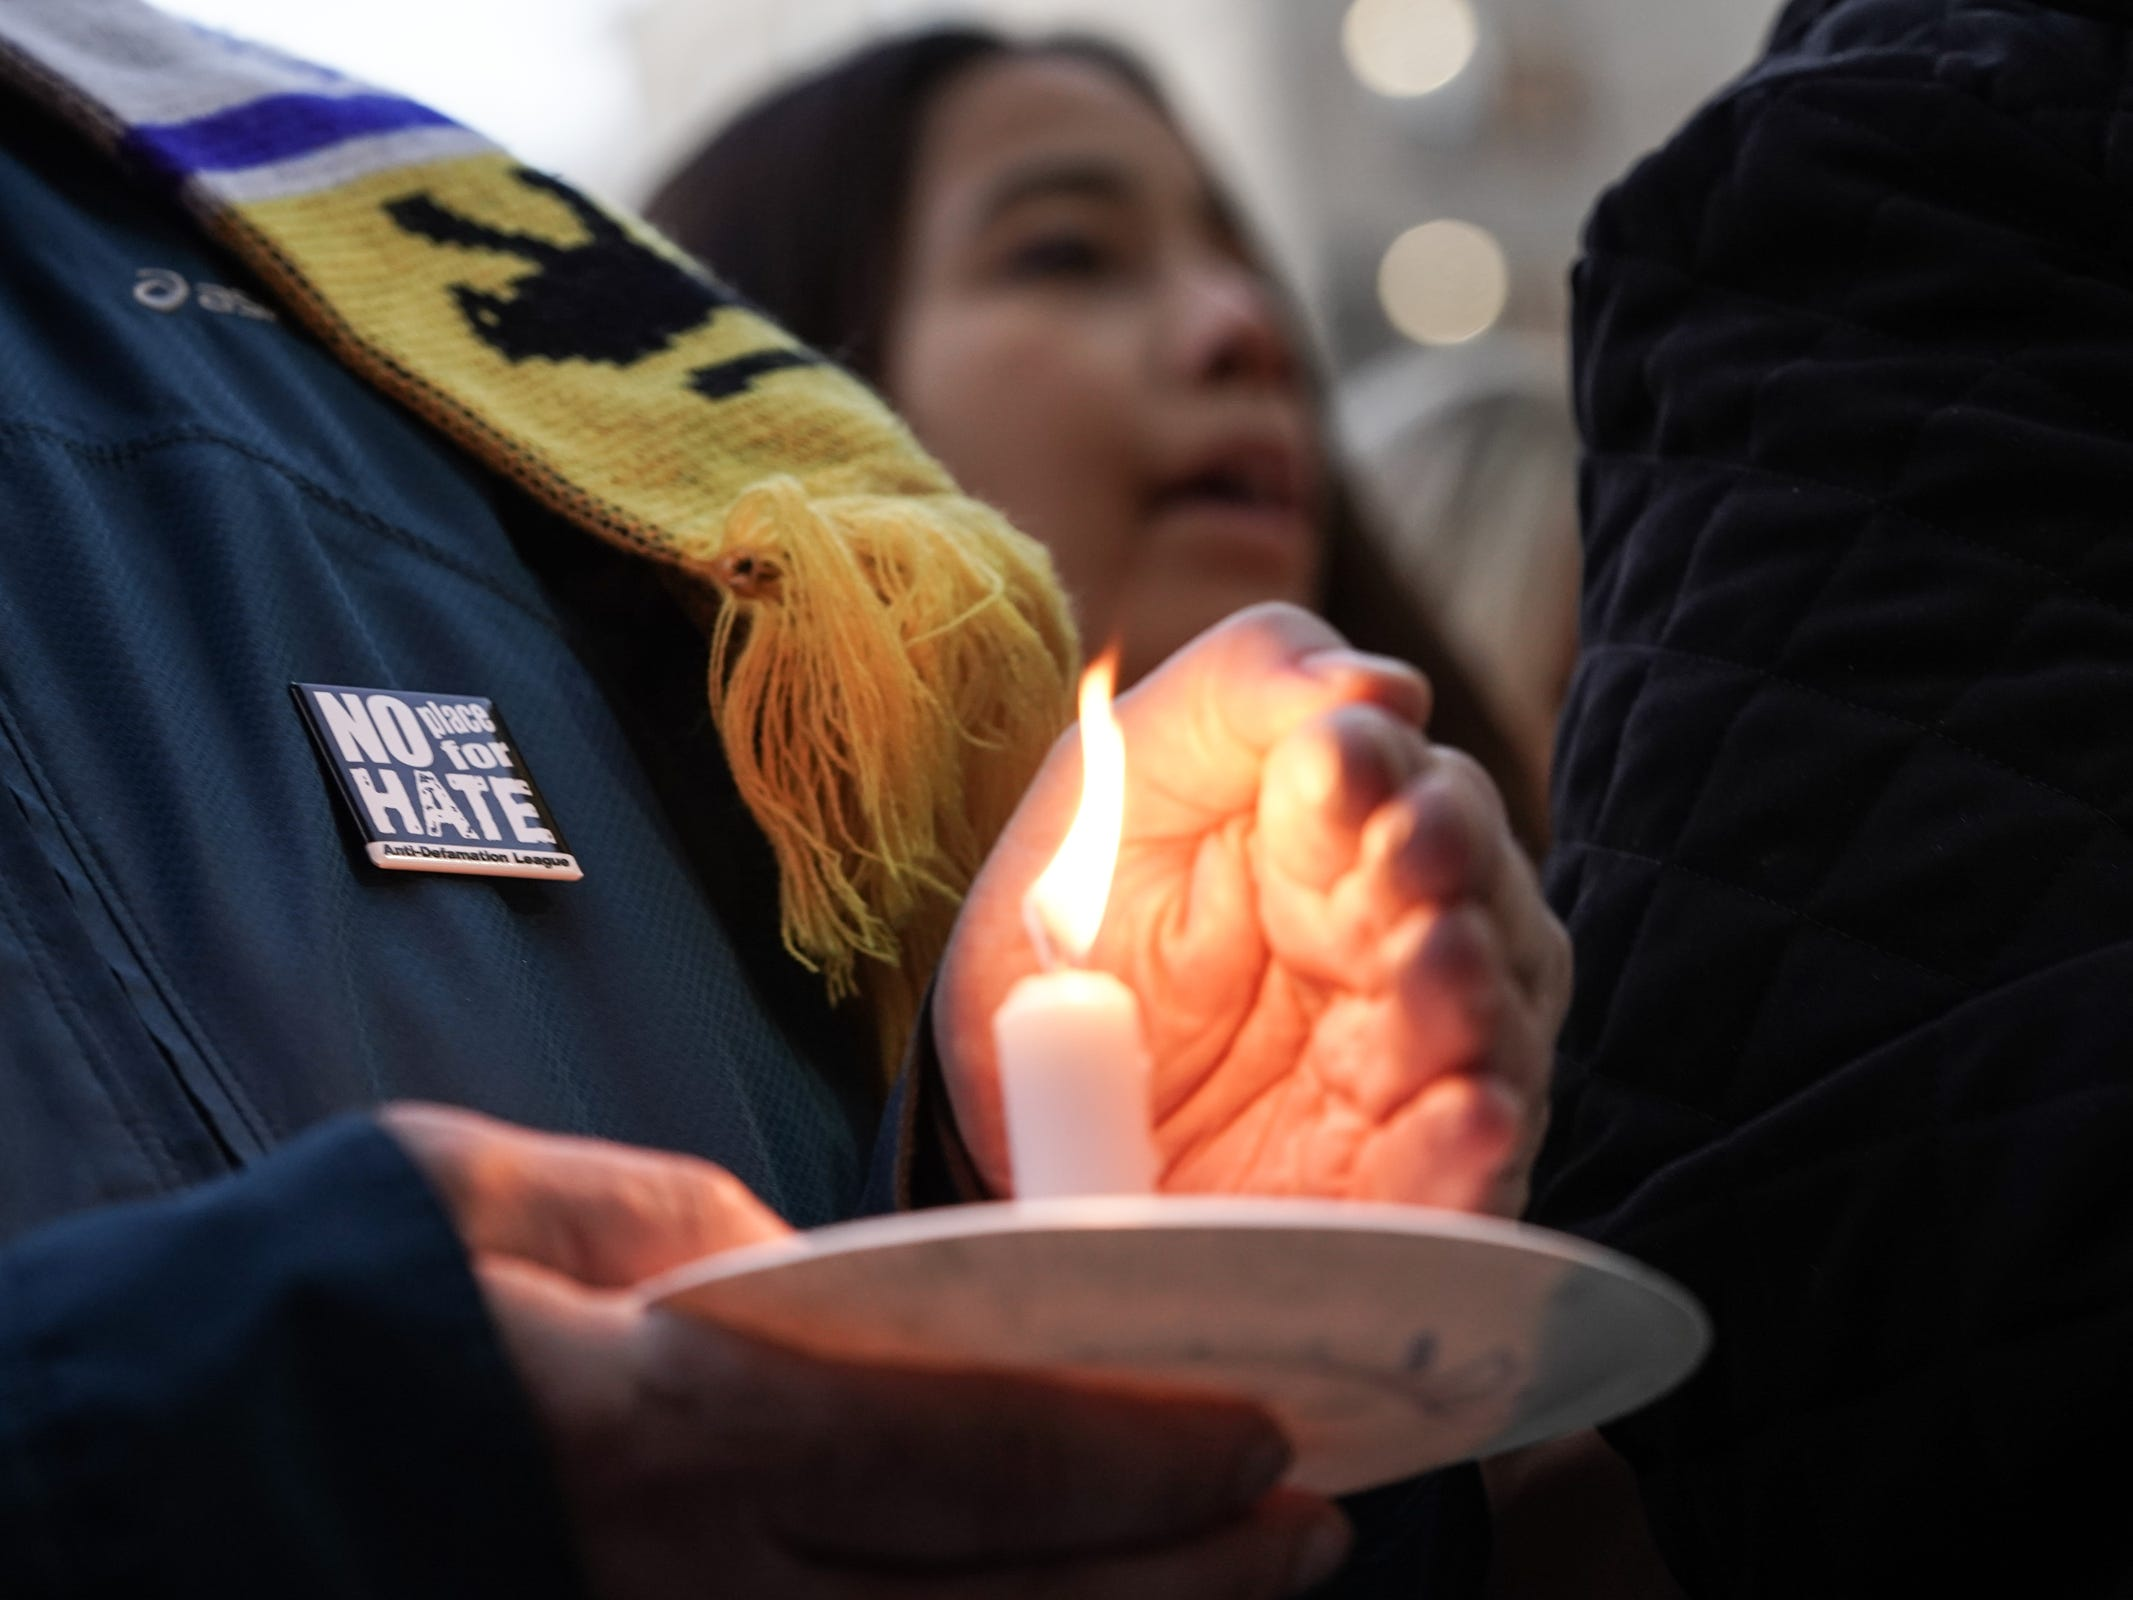 Harvey Leven of Farmington Hills holds a candle while singing with other community members during a vigil for the shooting victims killed inside the Tree of Life synagogue in Pittsburgh on Monday, October 29, 2018 at Capitol Park in downtown Detroit.